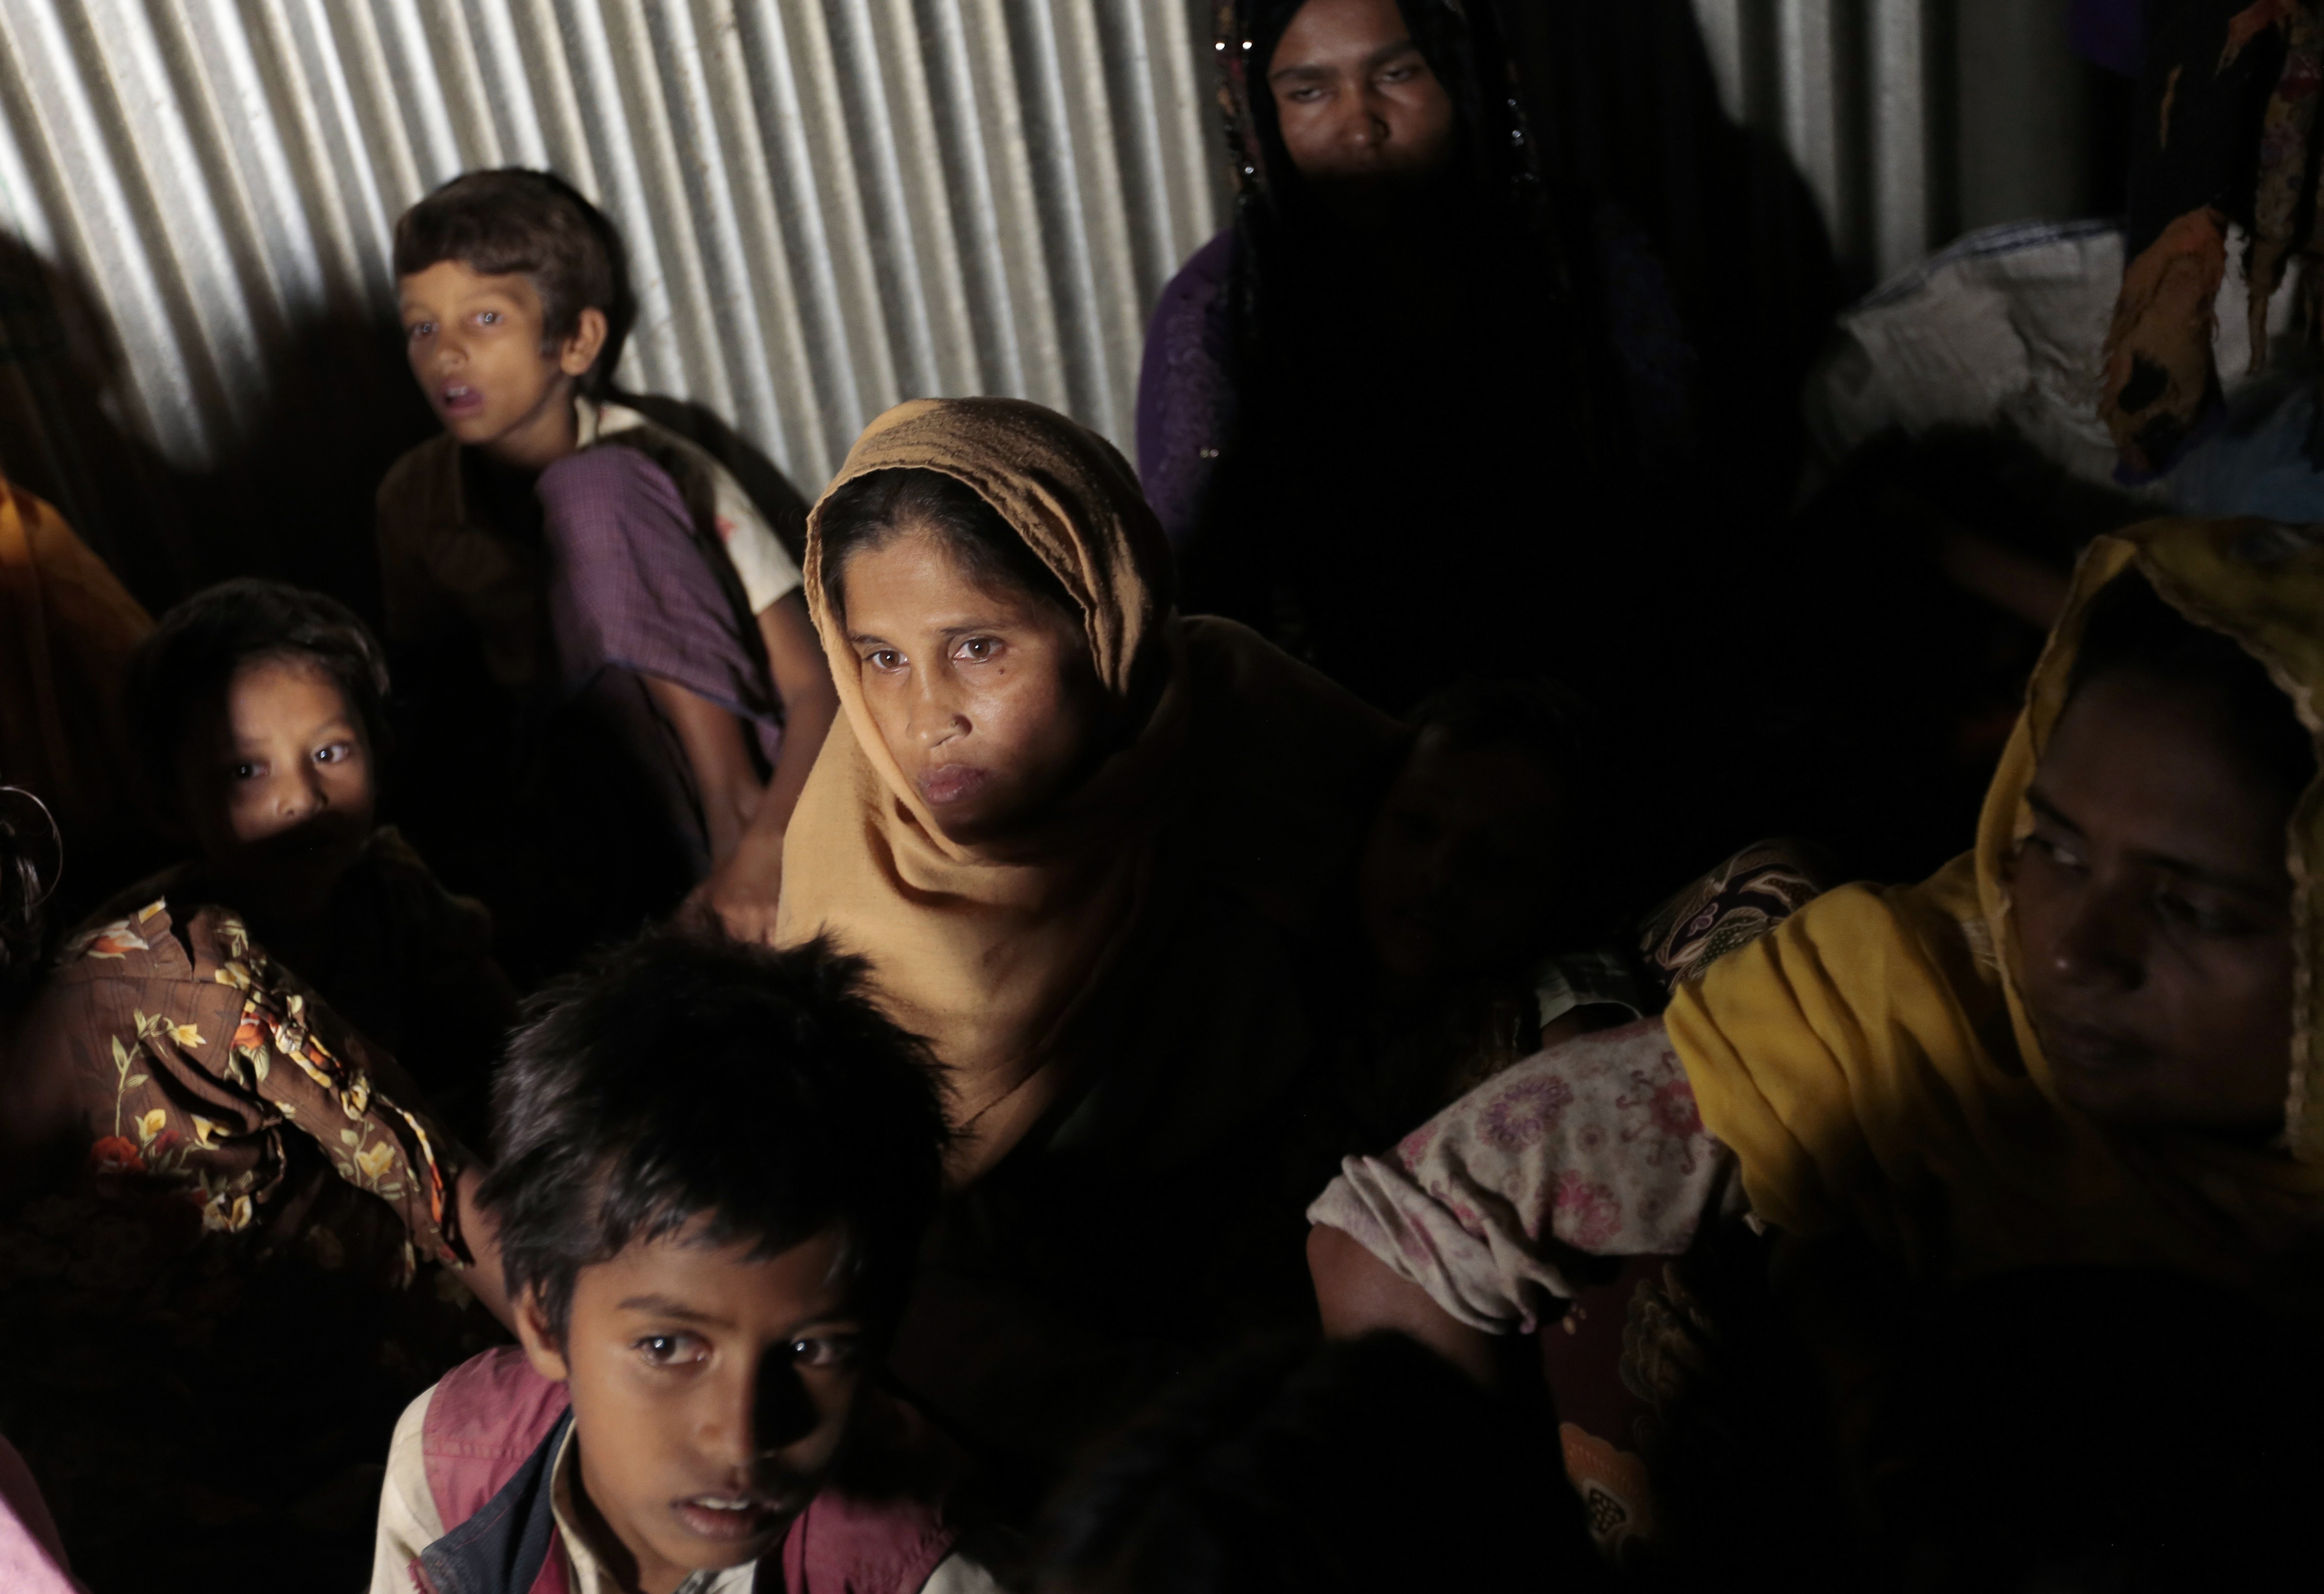 FILE - In this Dec. 2, 2016 file photo, Rohingya from Myanmar who recently crossed over to Bangladesh, huddle in a room at an unregistered refugee camp in Teknaf, near Cox's Bazar, a southern coastal district about, 296 kilometers (183 miles) south of Dhaka, Bangladesh. Muslim villagers in western Myanmar's troubled Rakhine state said Sunday, Jan. 15, 2017, that they hope positive change will result from a U.N. envoy's visit to the region, where soldiers are accused of widespread abuses against minority Muslims, including murder, rape and the burning of thousands of homes. (AP Photo/A.M. Ahad, File)